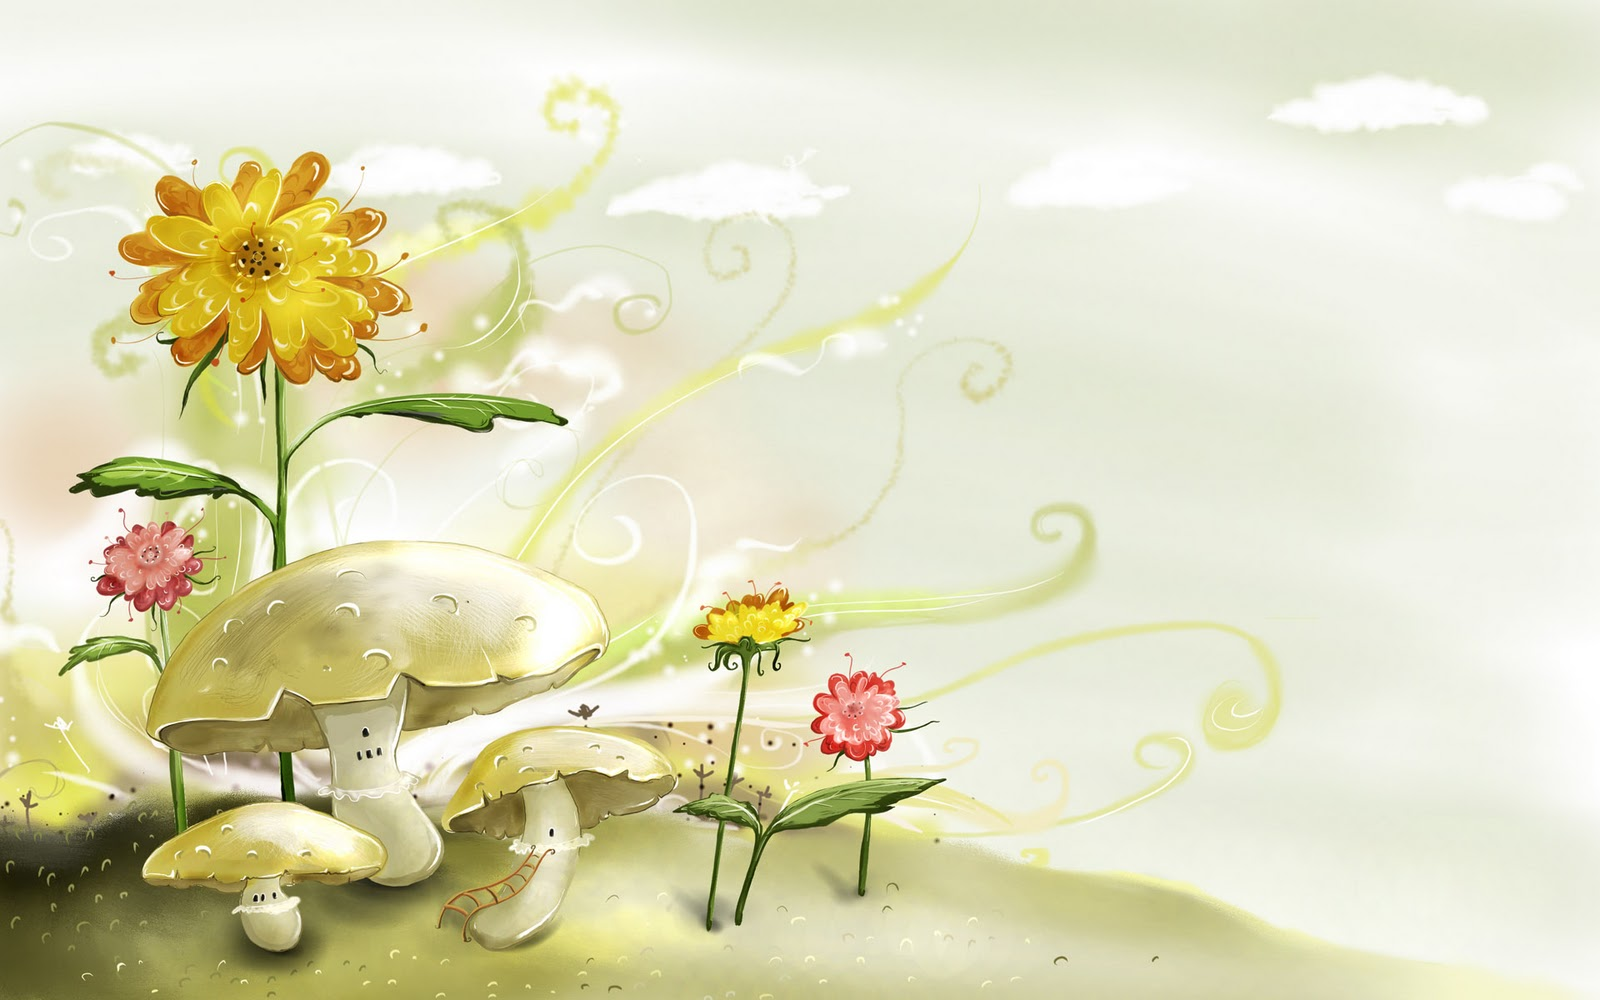 Spring Wallpaper wallpaper Cartoon Spring Wallpaper hd wallpaper 1600x1000